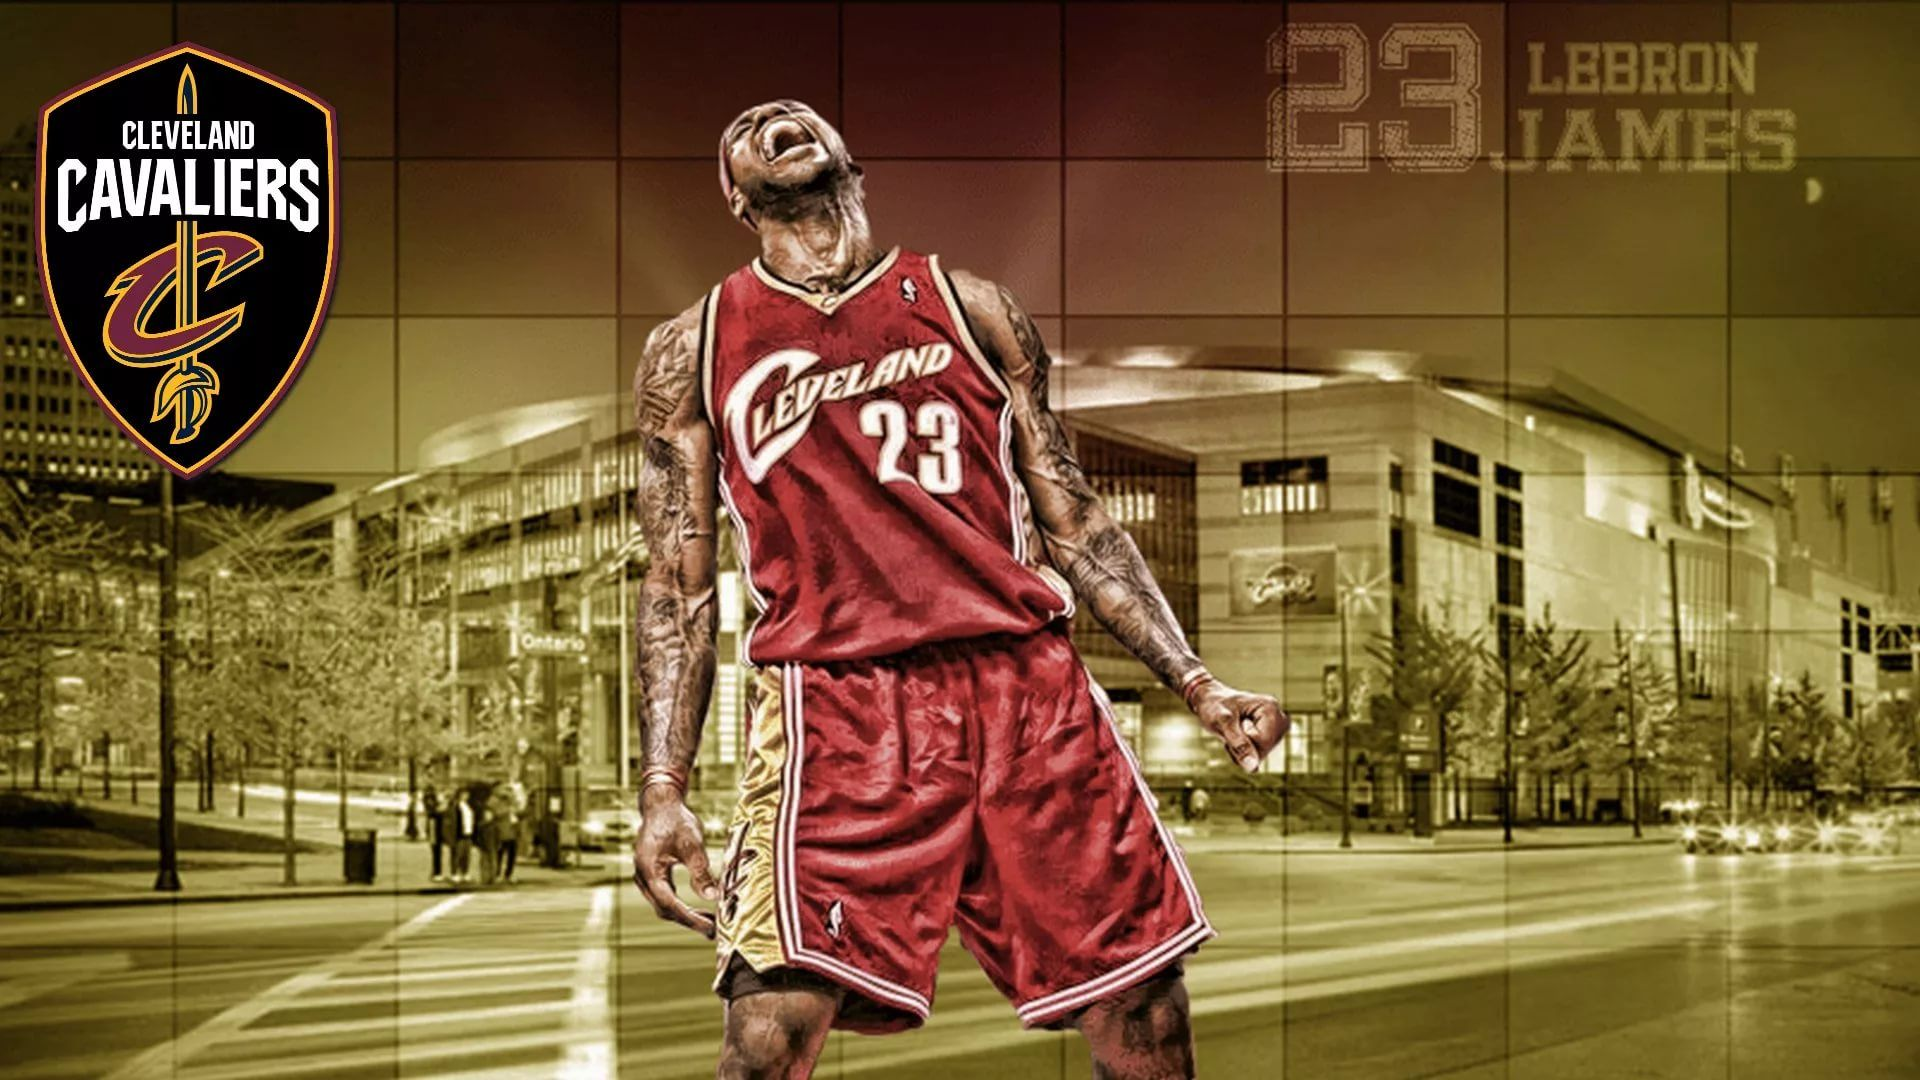 Lebron James wallpaper picture hd